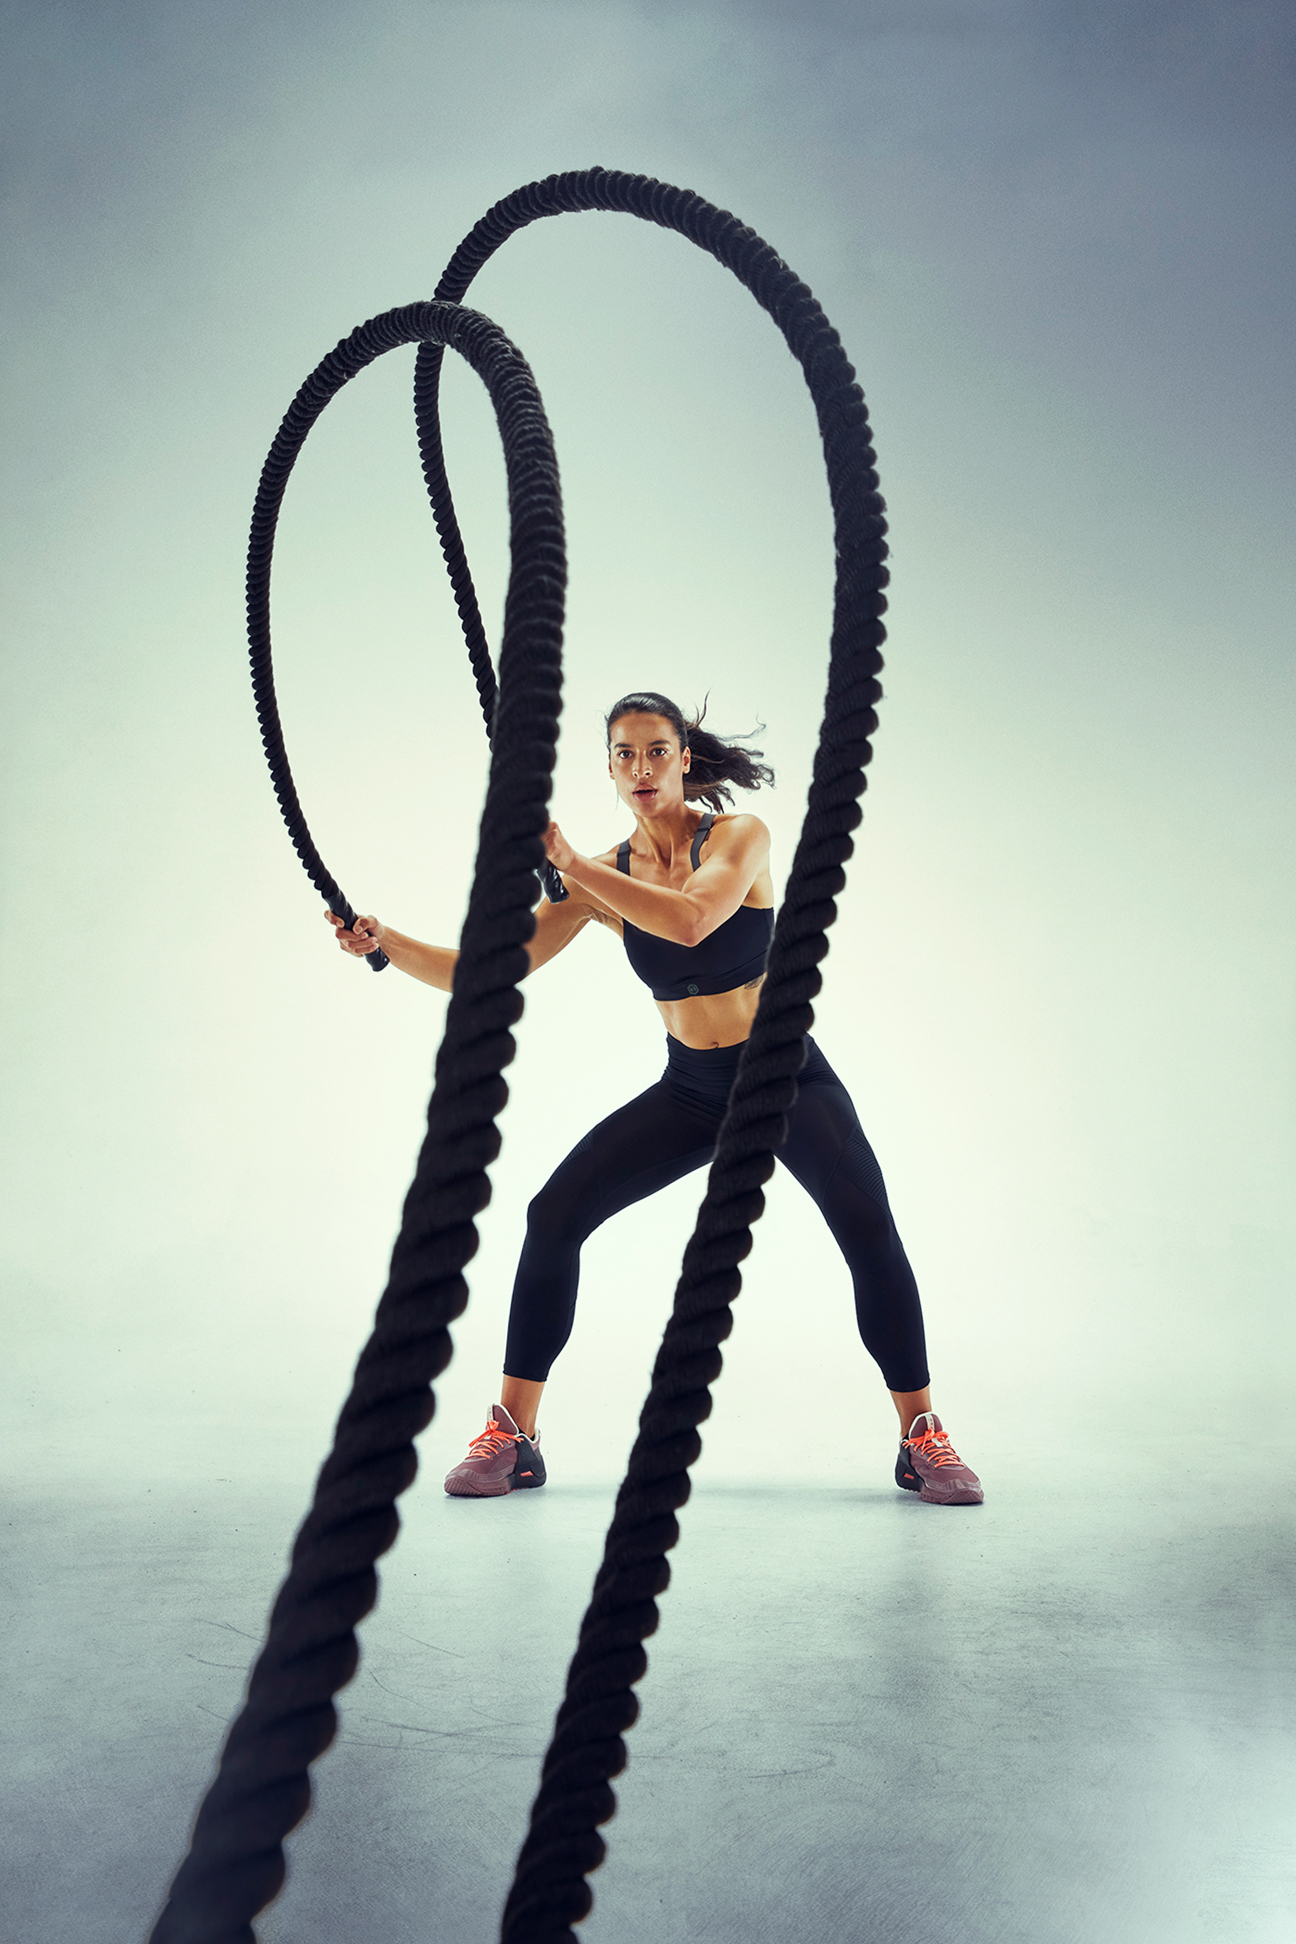 Under Armour Fitness - Battle Ropes